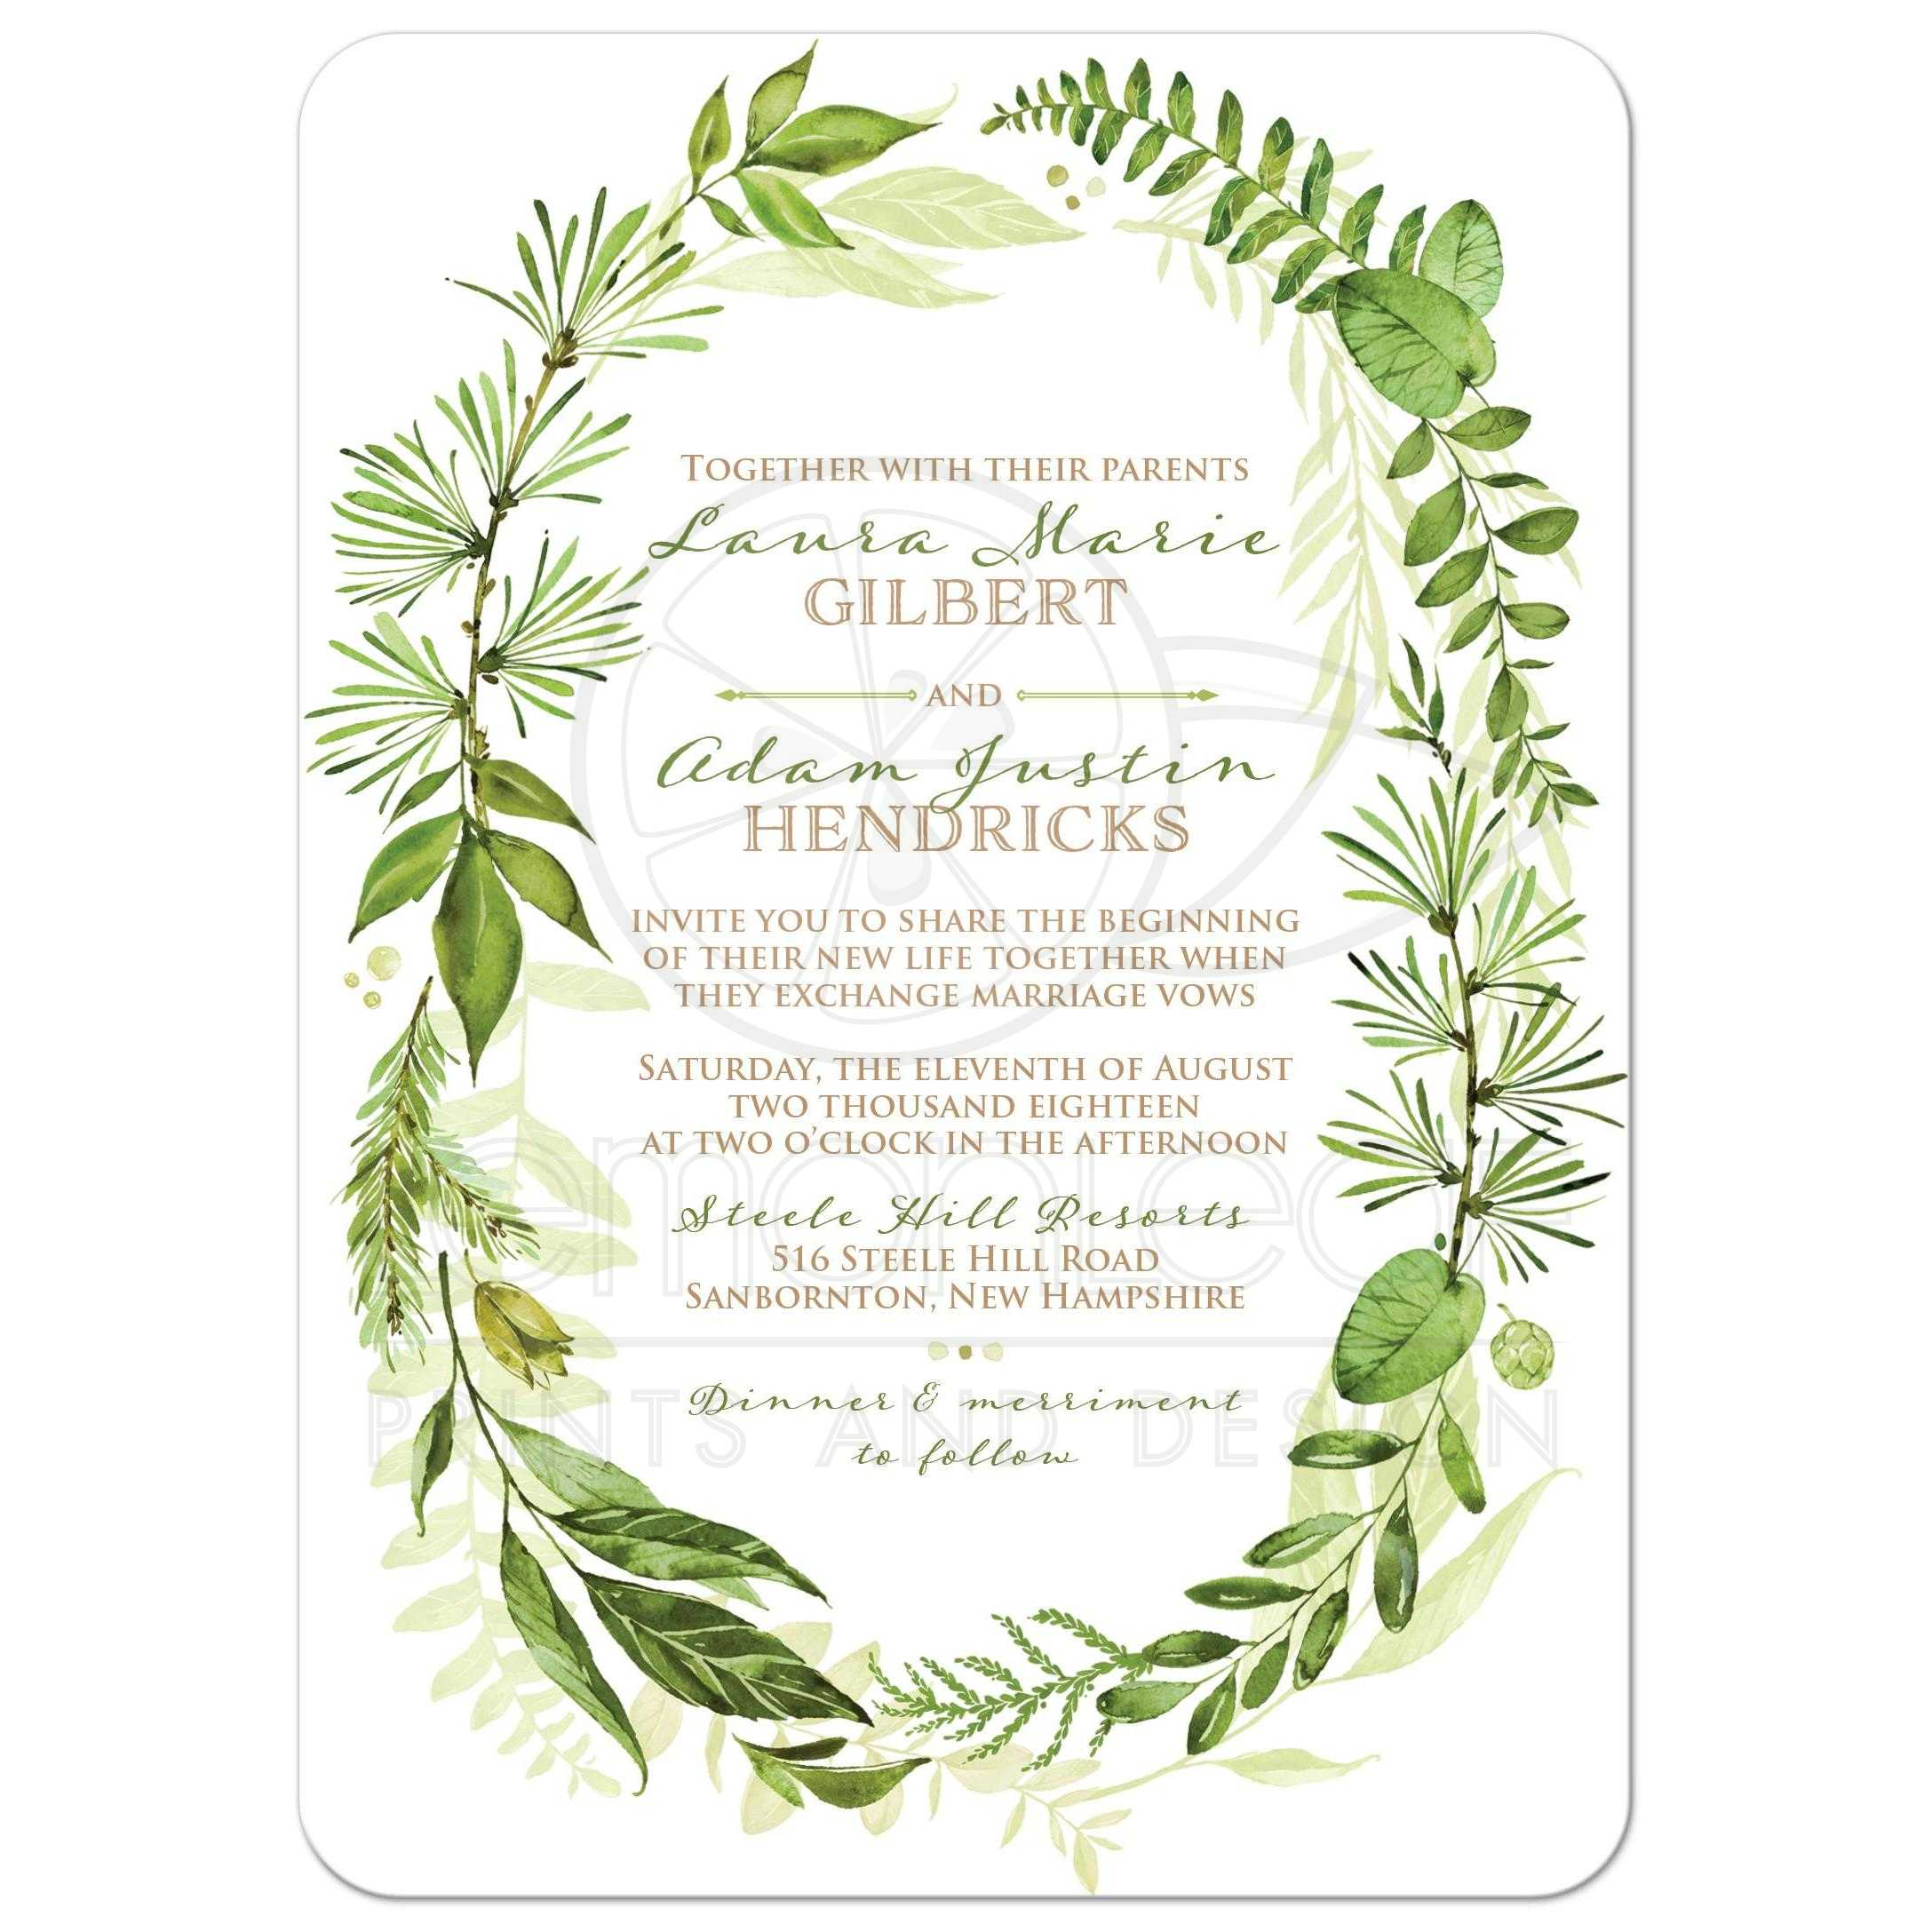 Woodland Wedding Invitations with luxury invitations template